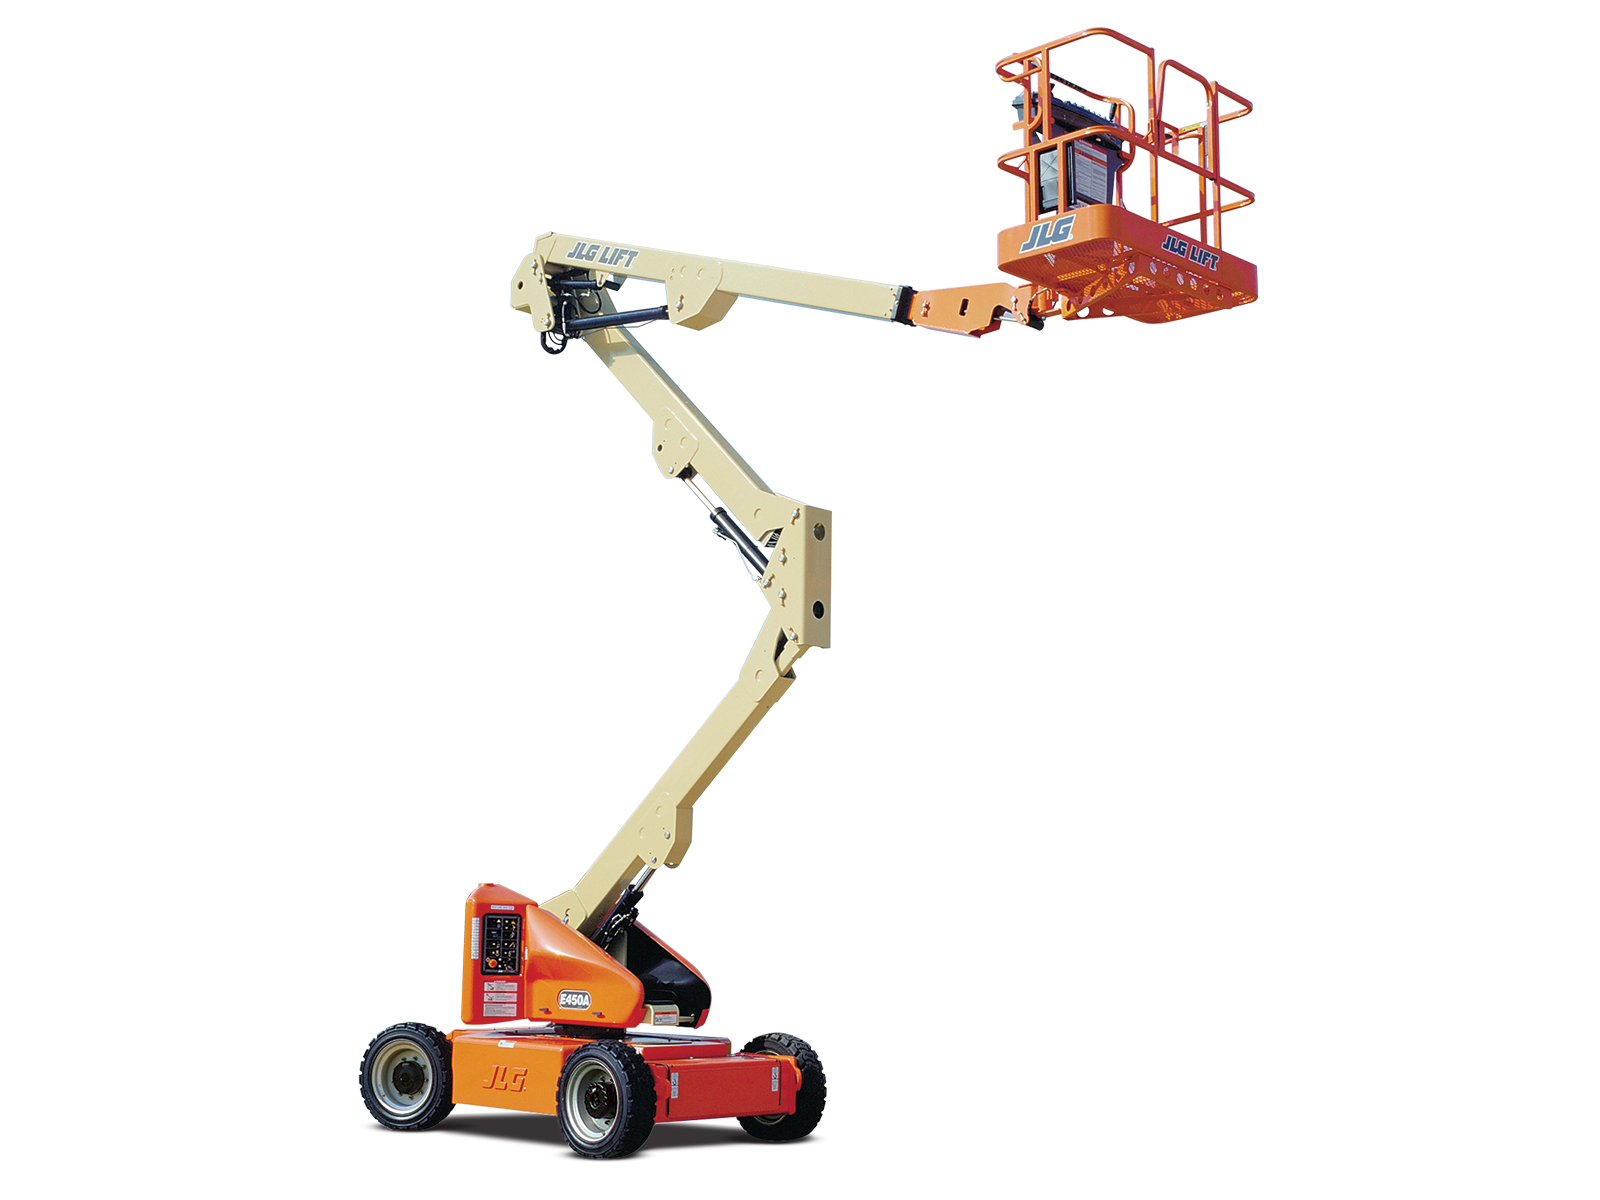 JLG Articulating Boom Lifts E450A